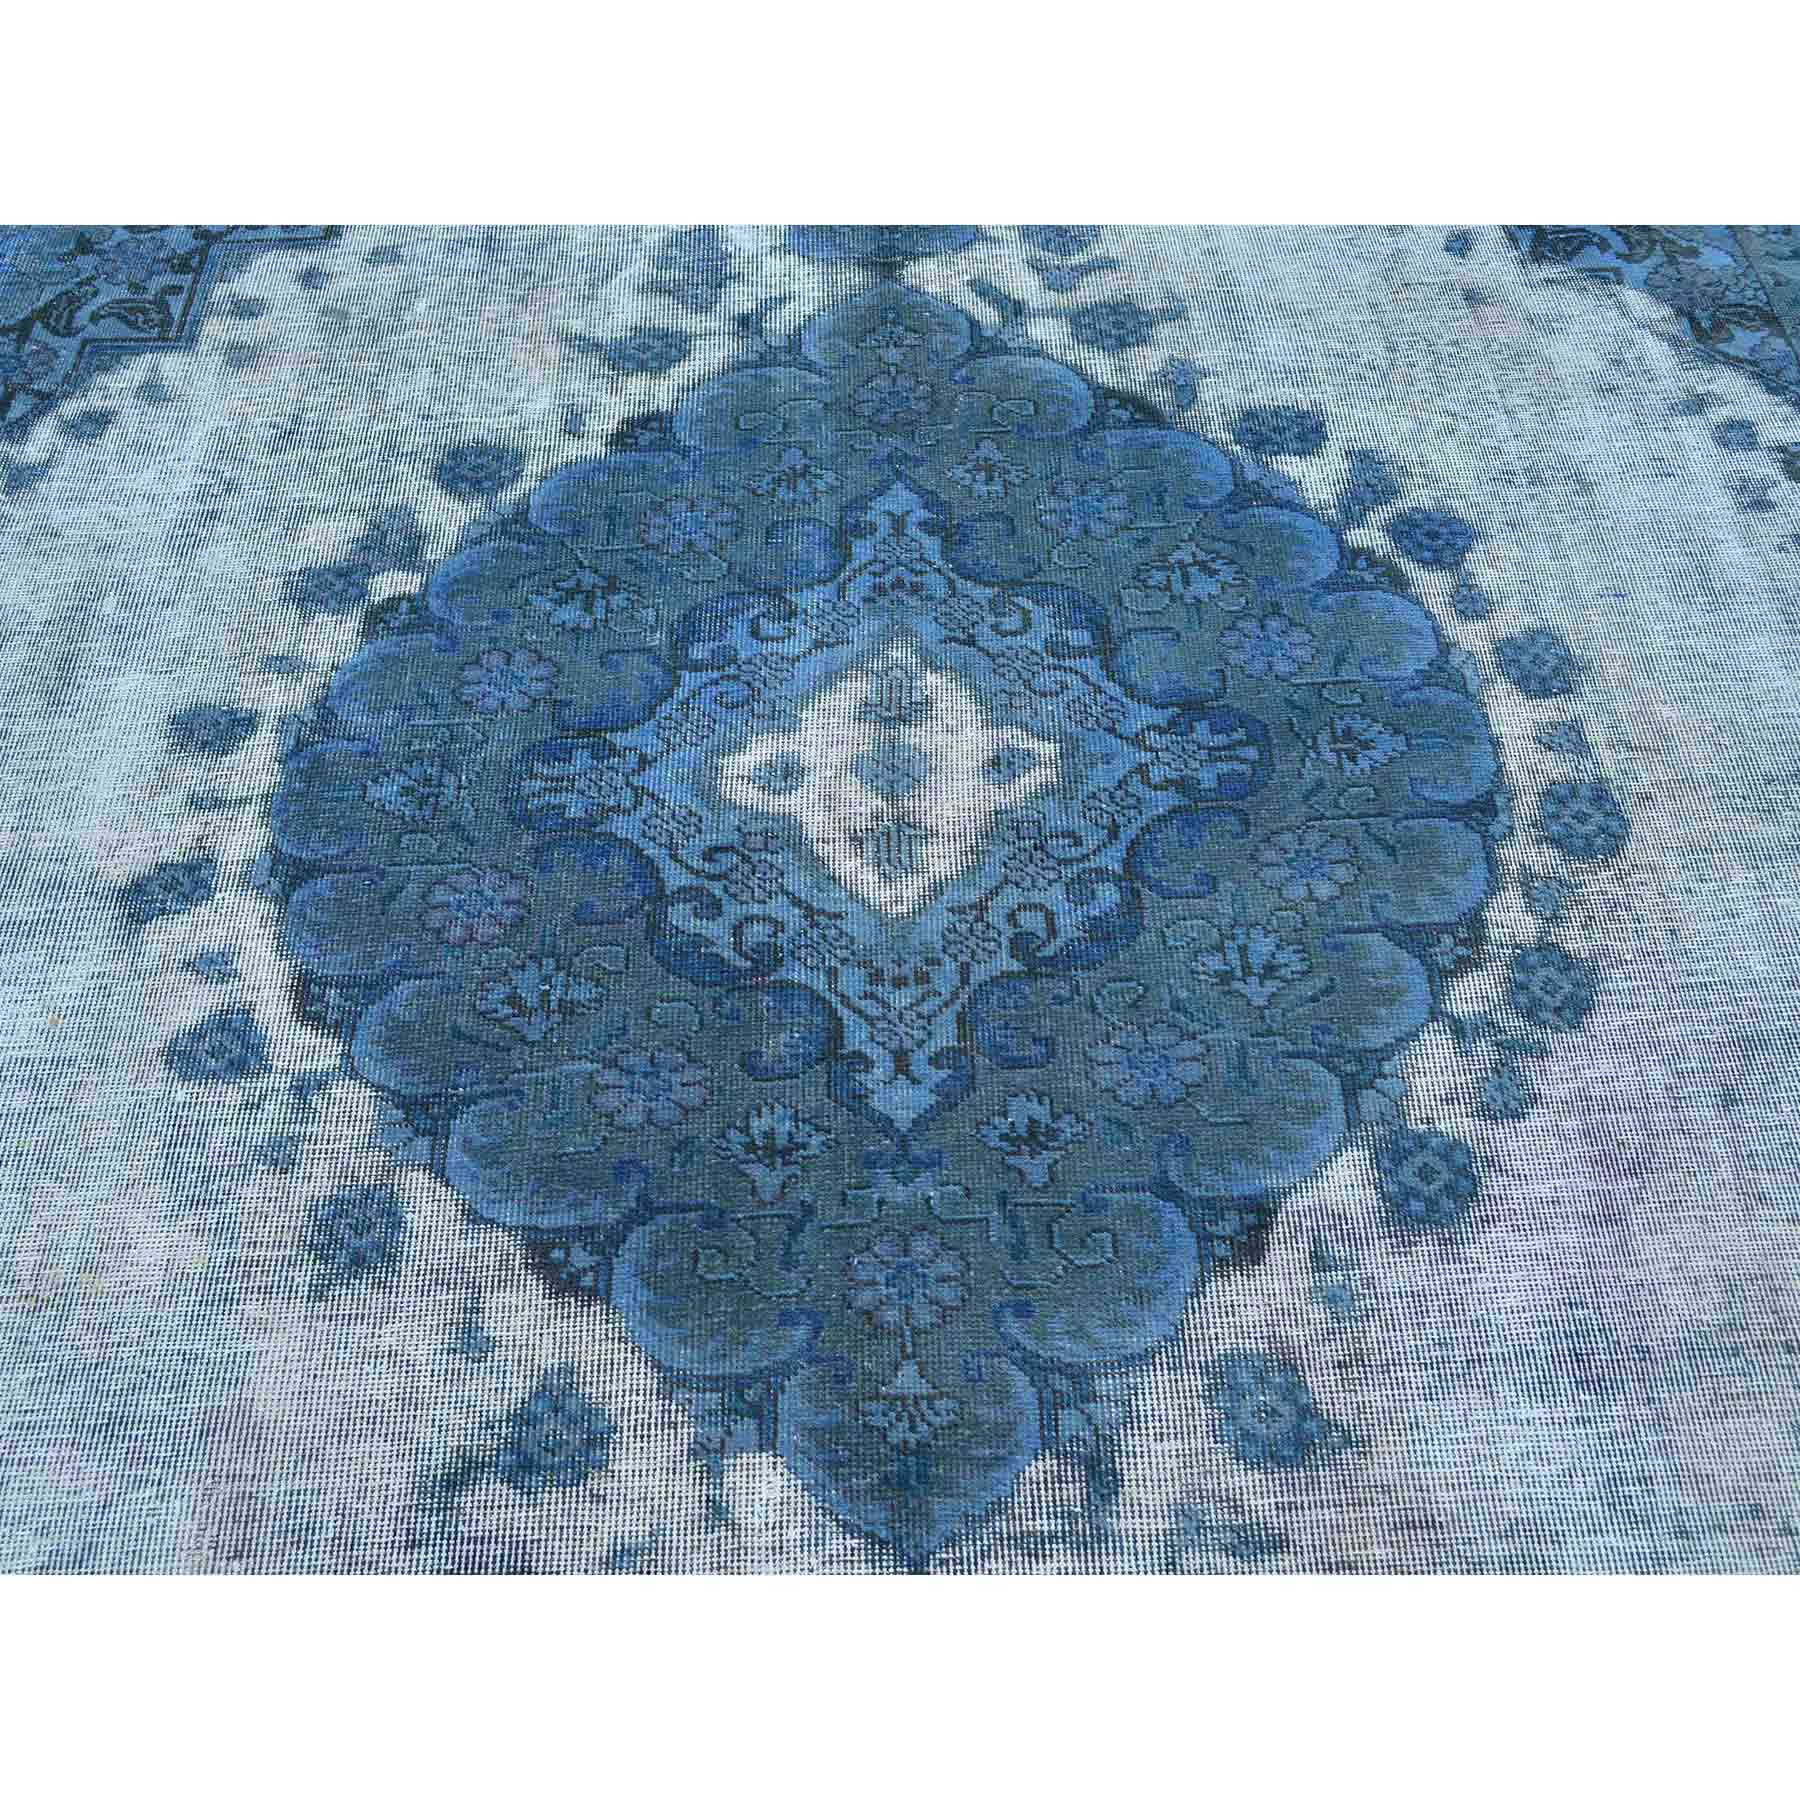 Overdyed-Vintage-Hand-Knotted-Rug-125790